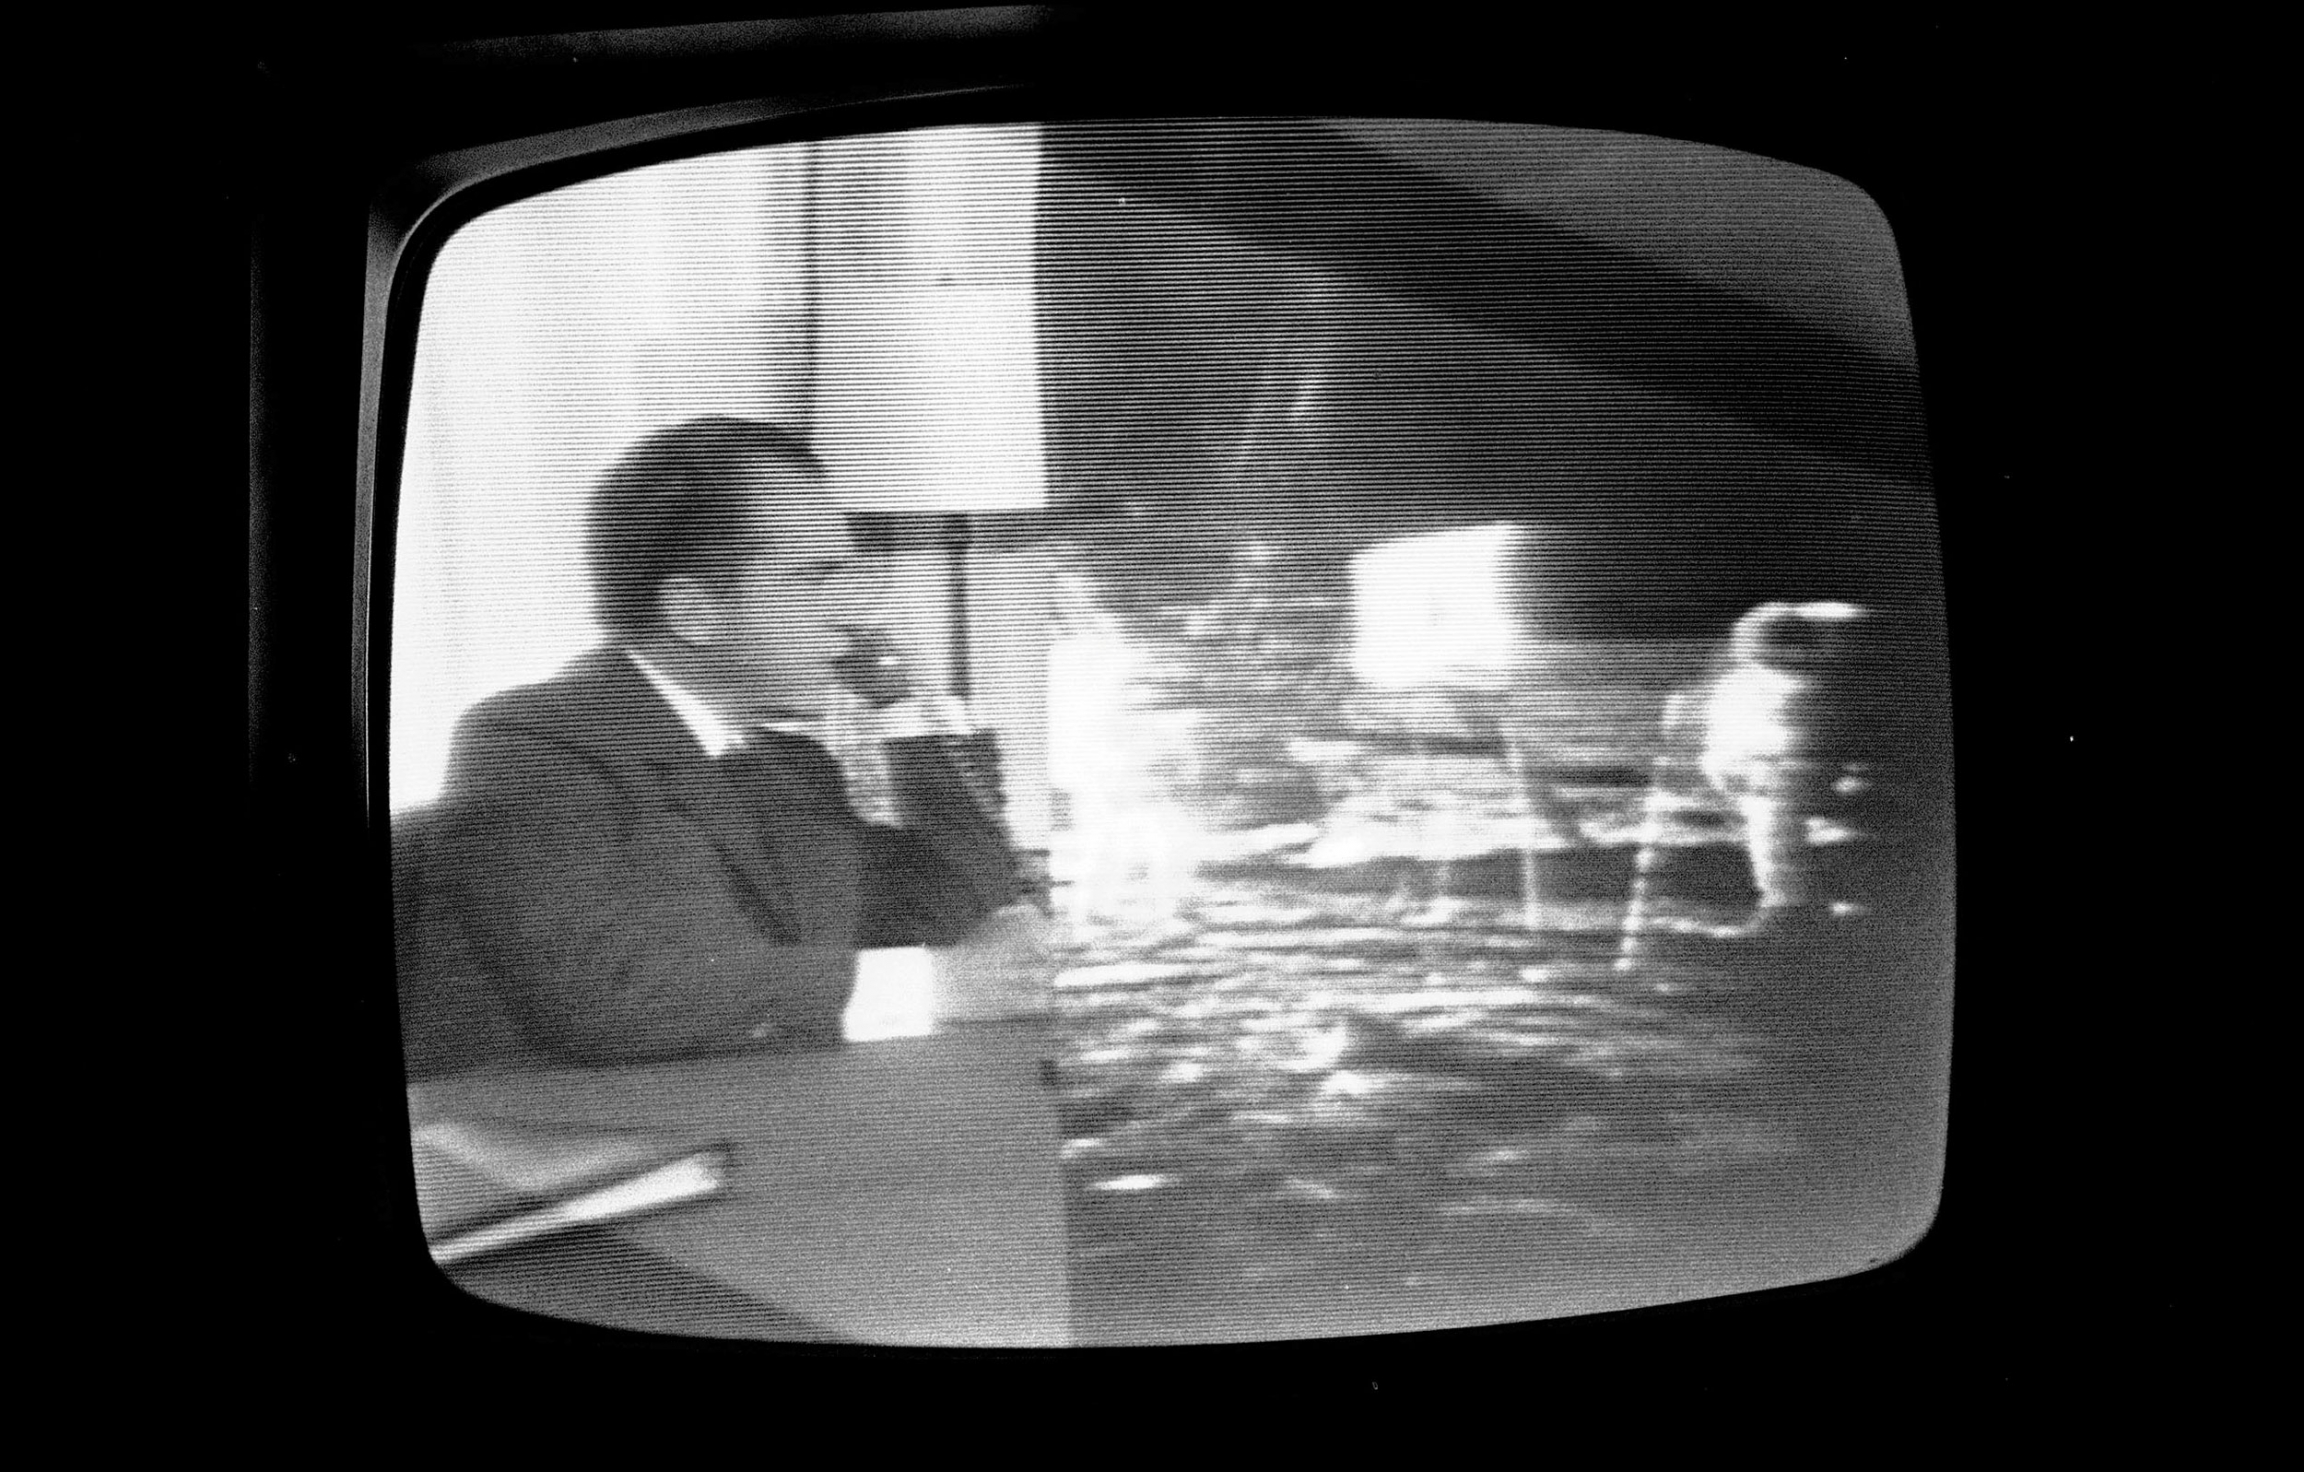 In a photograph of a television,  President Richard Nixon is shown on the left and Apollo 11 crew is shown on the right all in black and white.